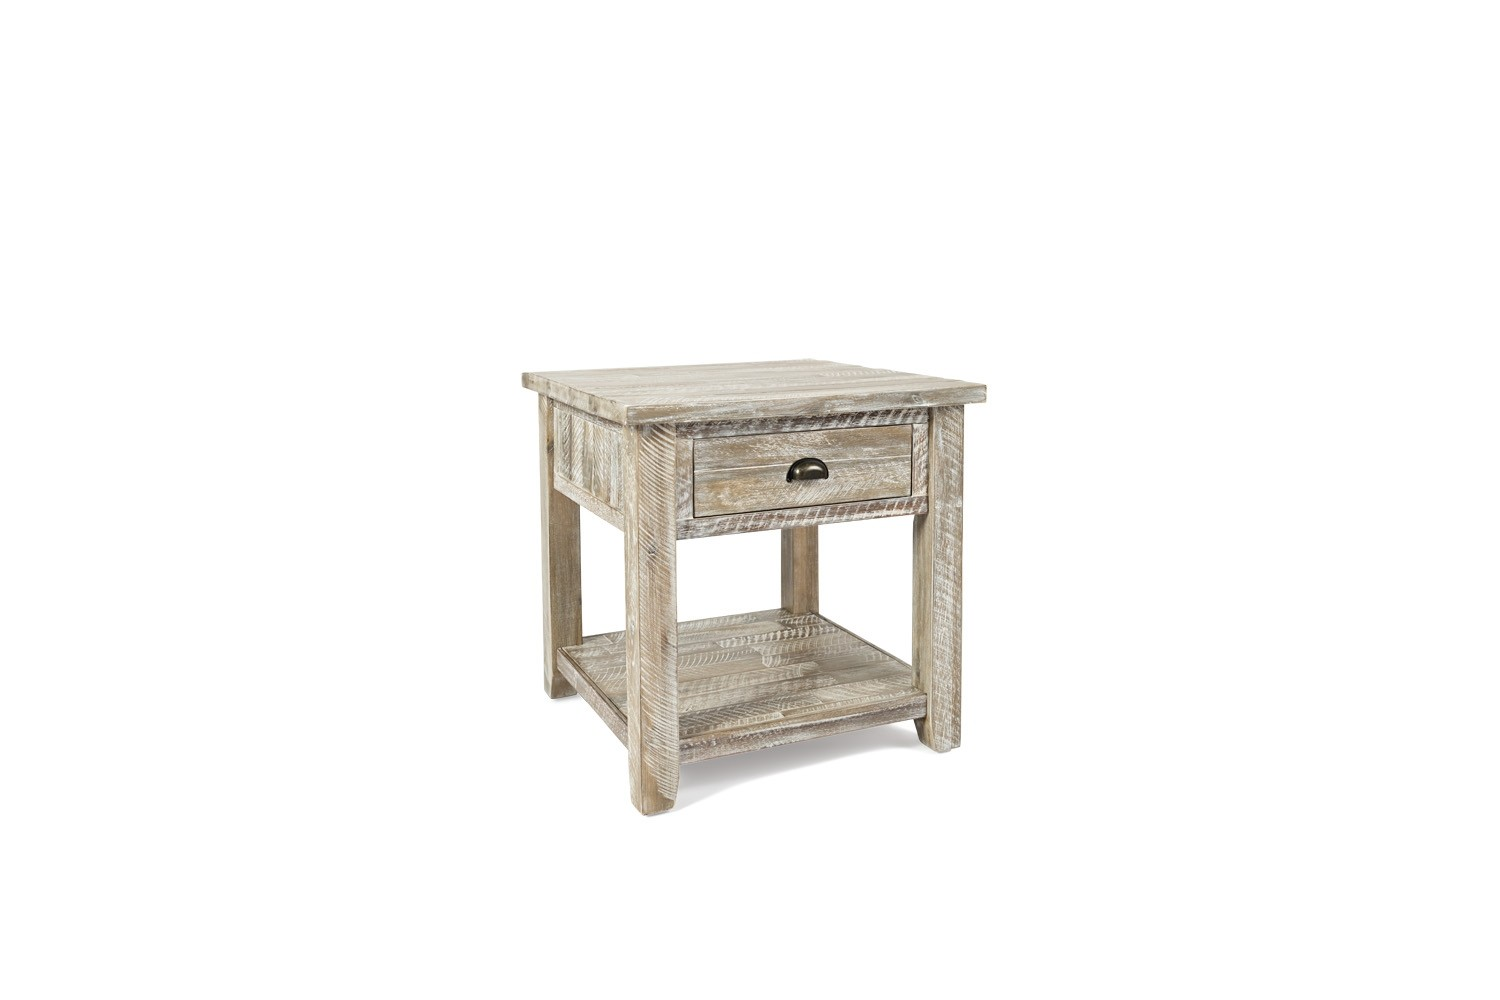 artisans end table gray mor furniture for less gry tbl side tables media buffet and hutch wall clocks homesense cocktail coffee inch tall sofa best modern glass dining white